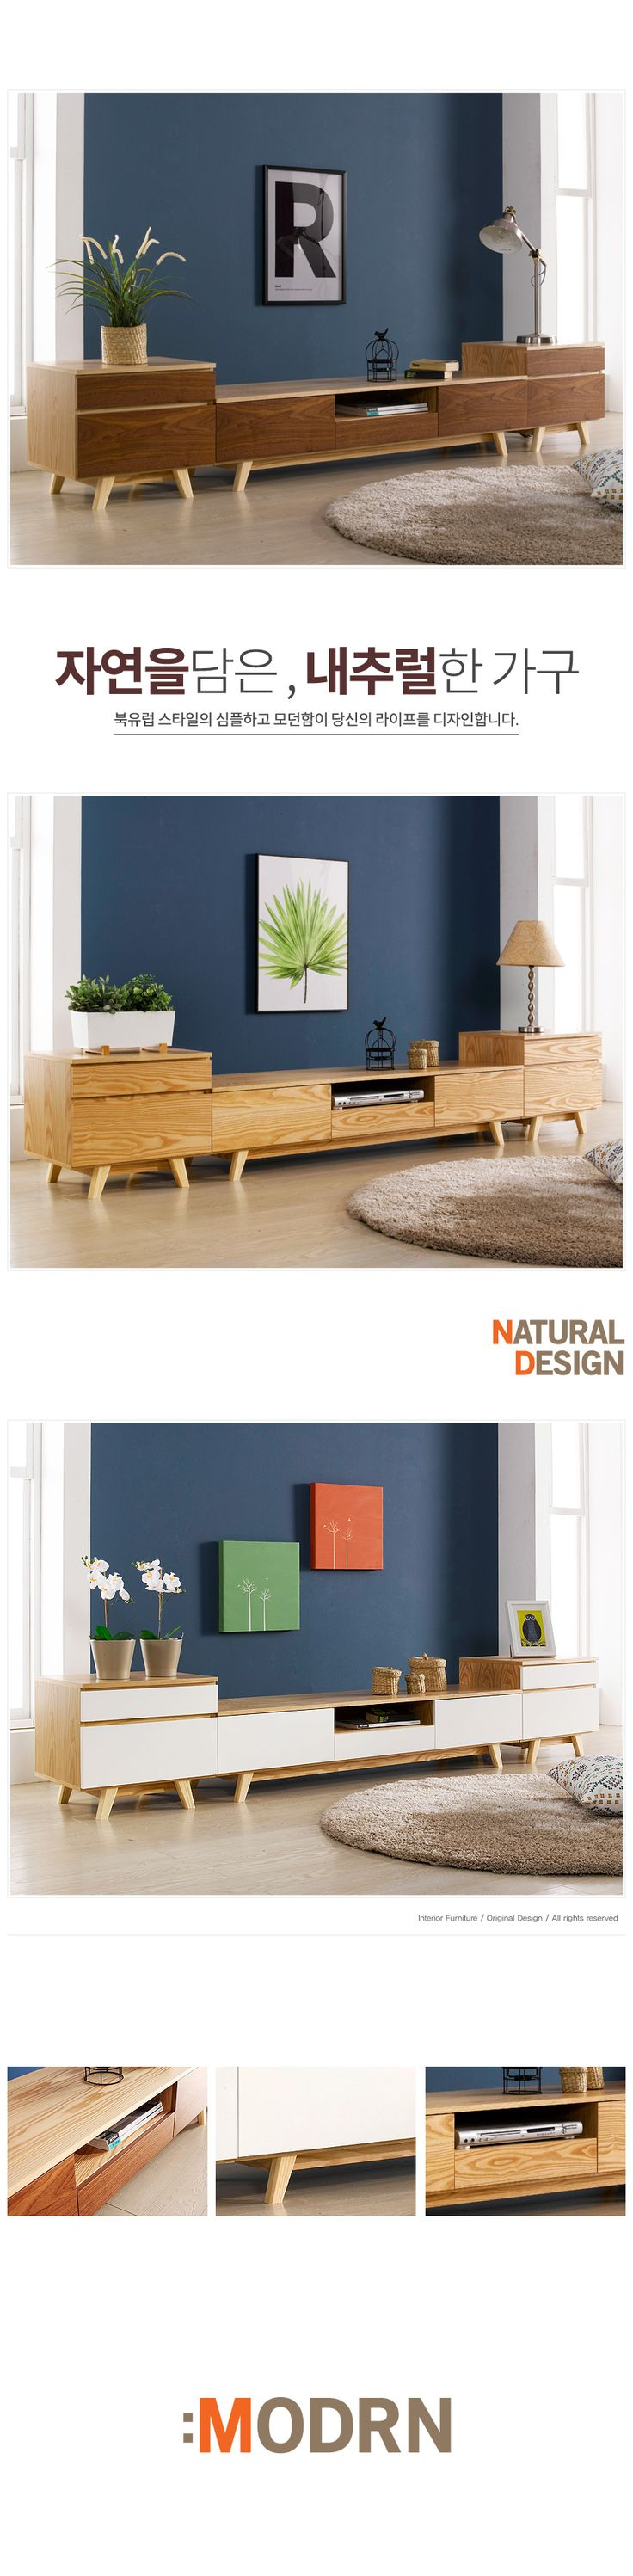 27 Best Tv M Bel Images On Pinterest Tv Stands Tv Unit And  # Meuble Tv Kavehome